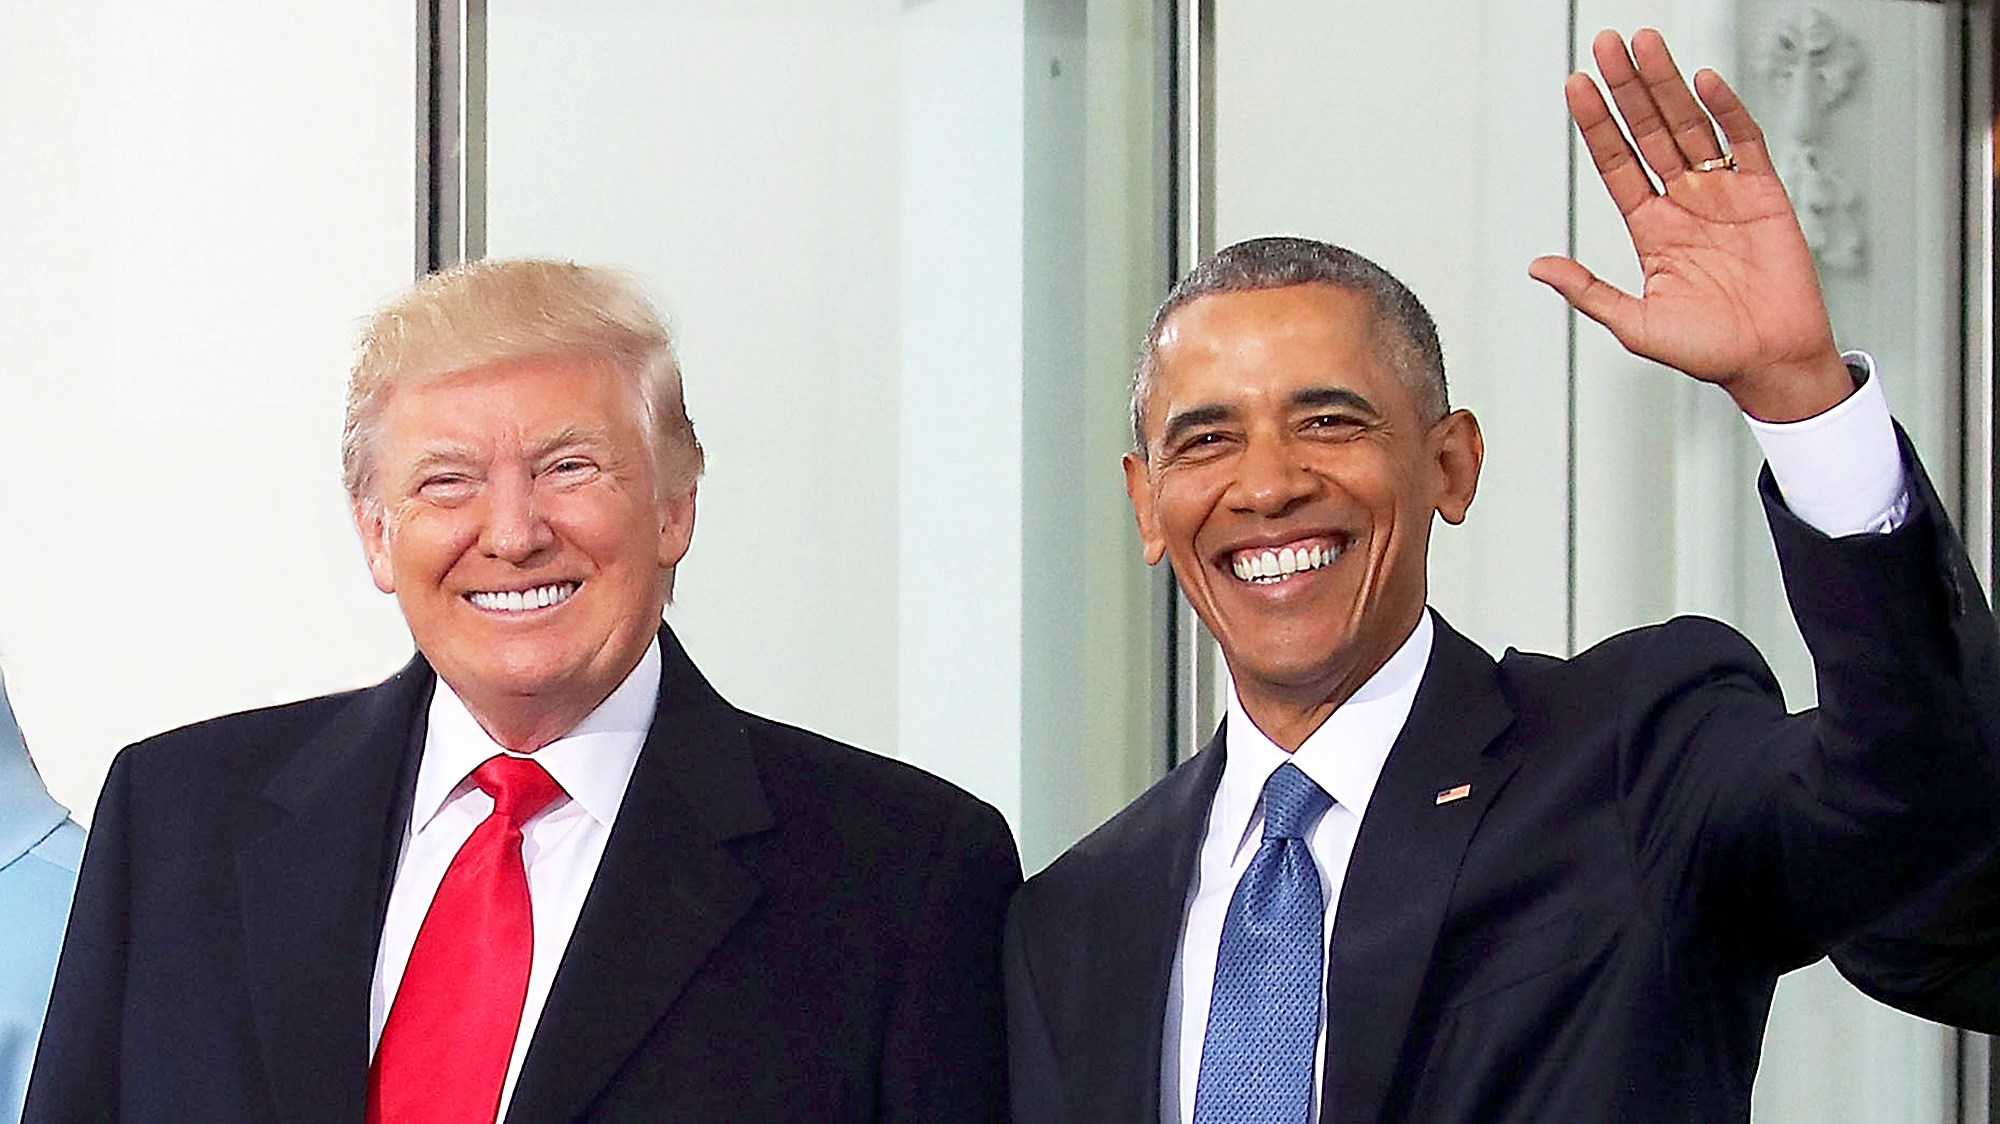 Presidential Signatures Analyzed From Donald Trump To Barack Obama